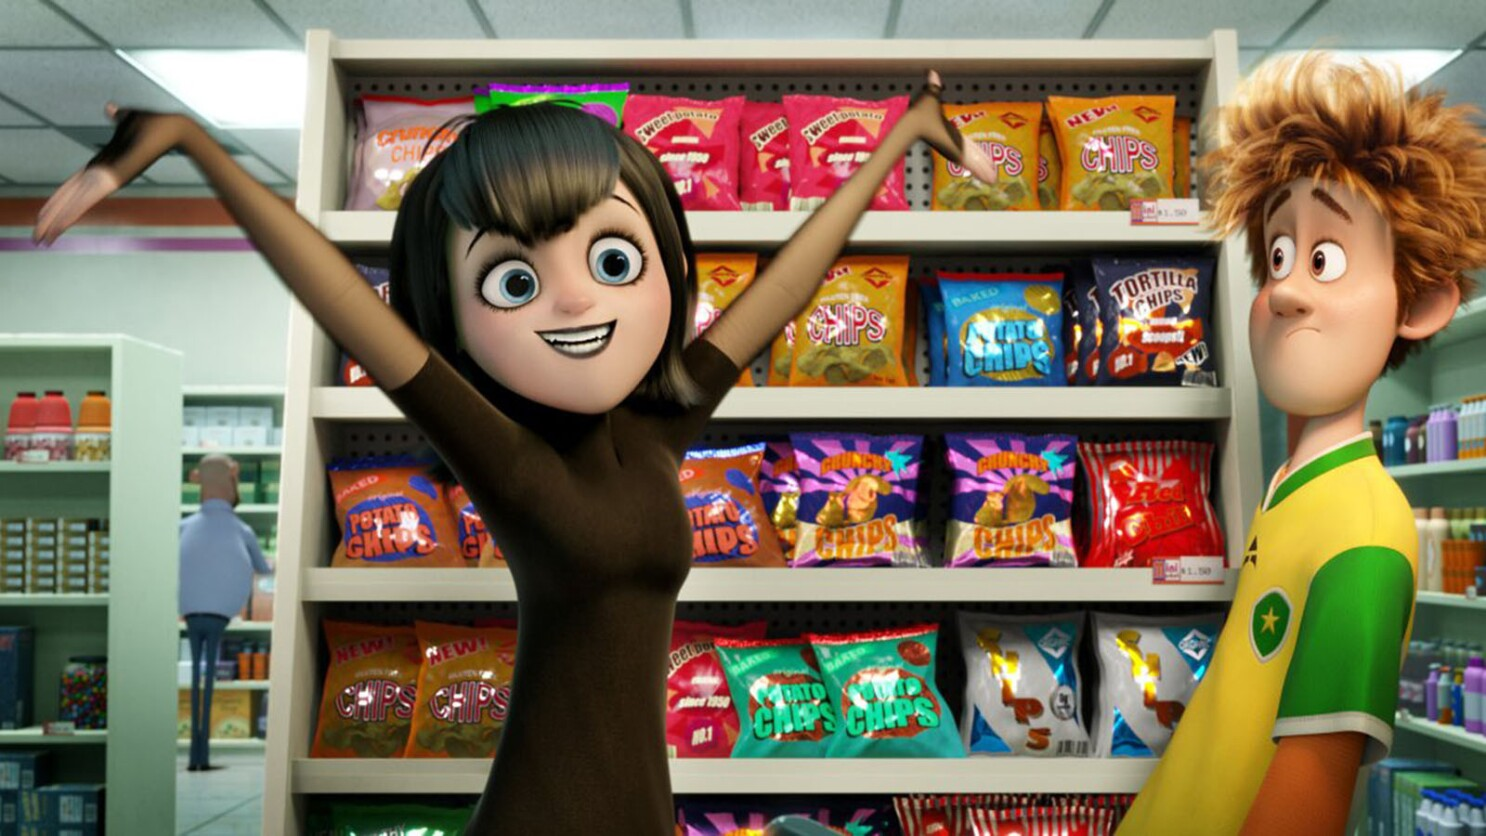 Hotel Transylvania 2 Is Expected Scare Up The Biggest Box Office Los Angeles Times